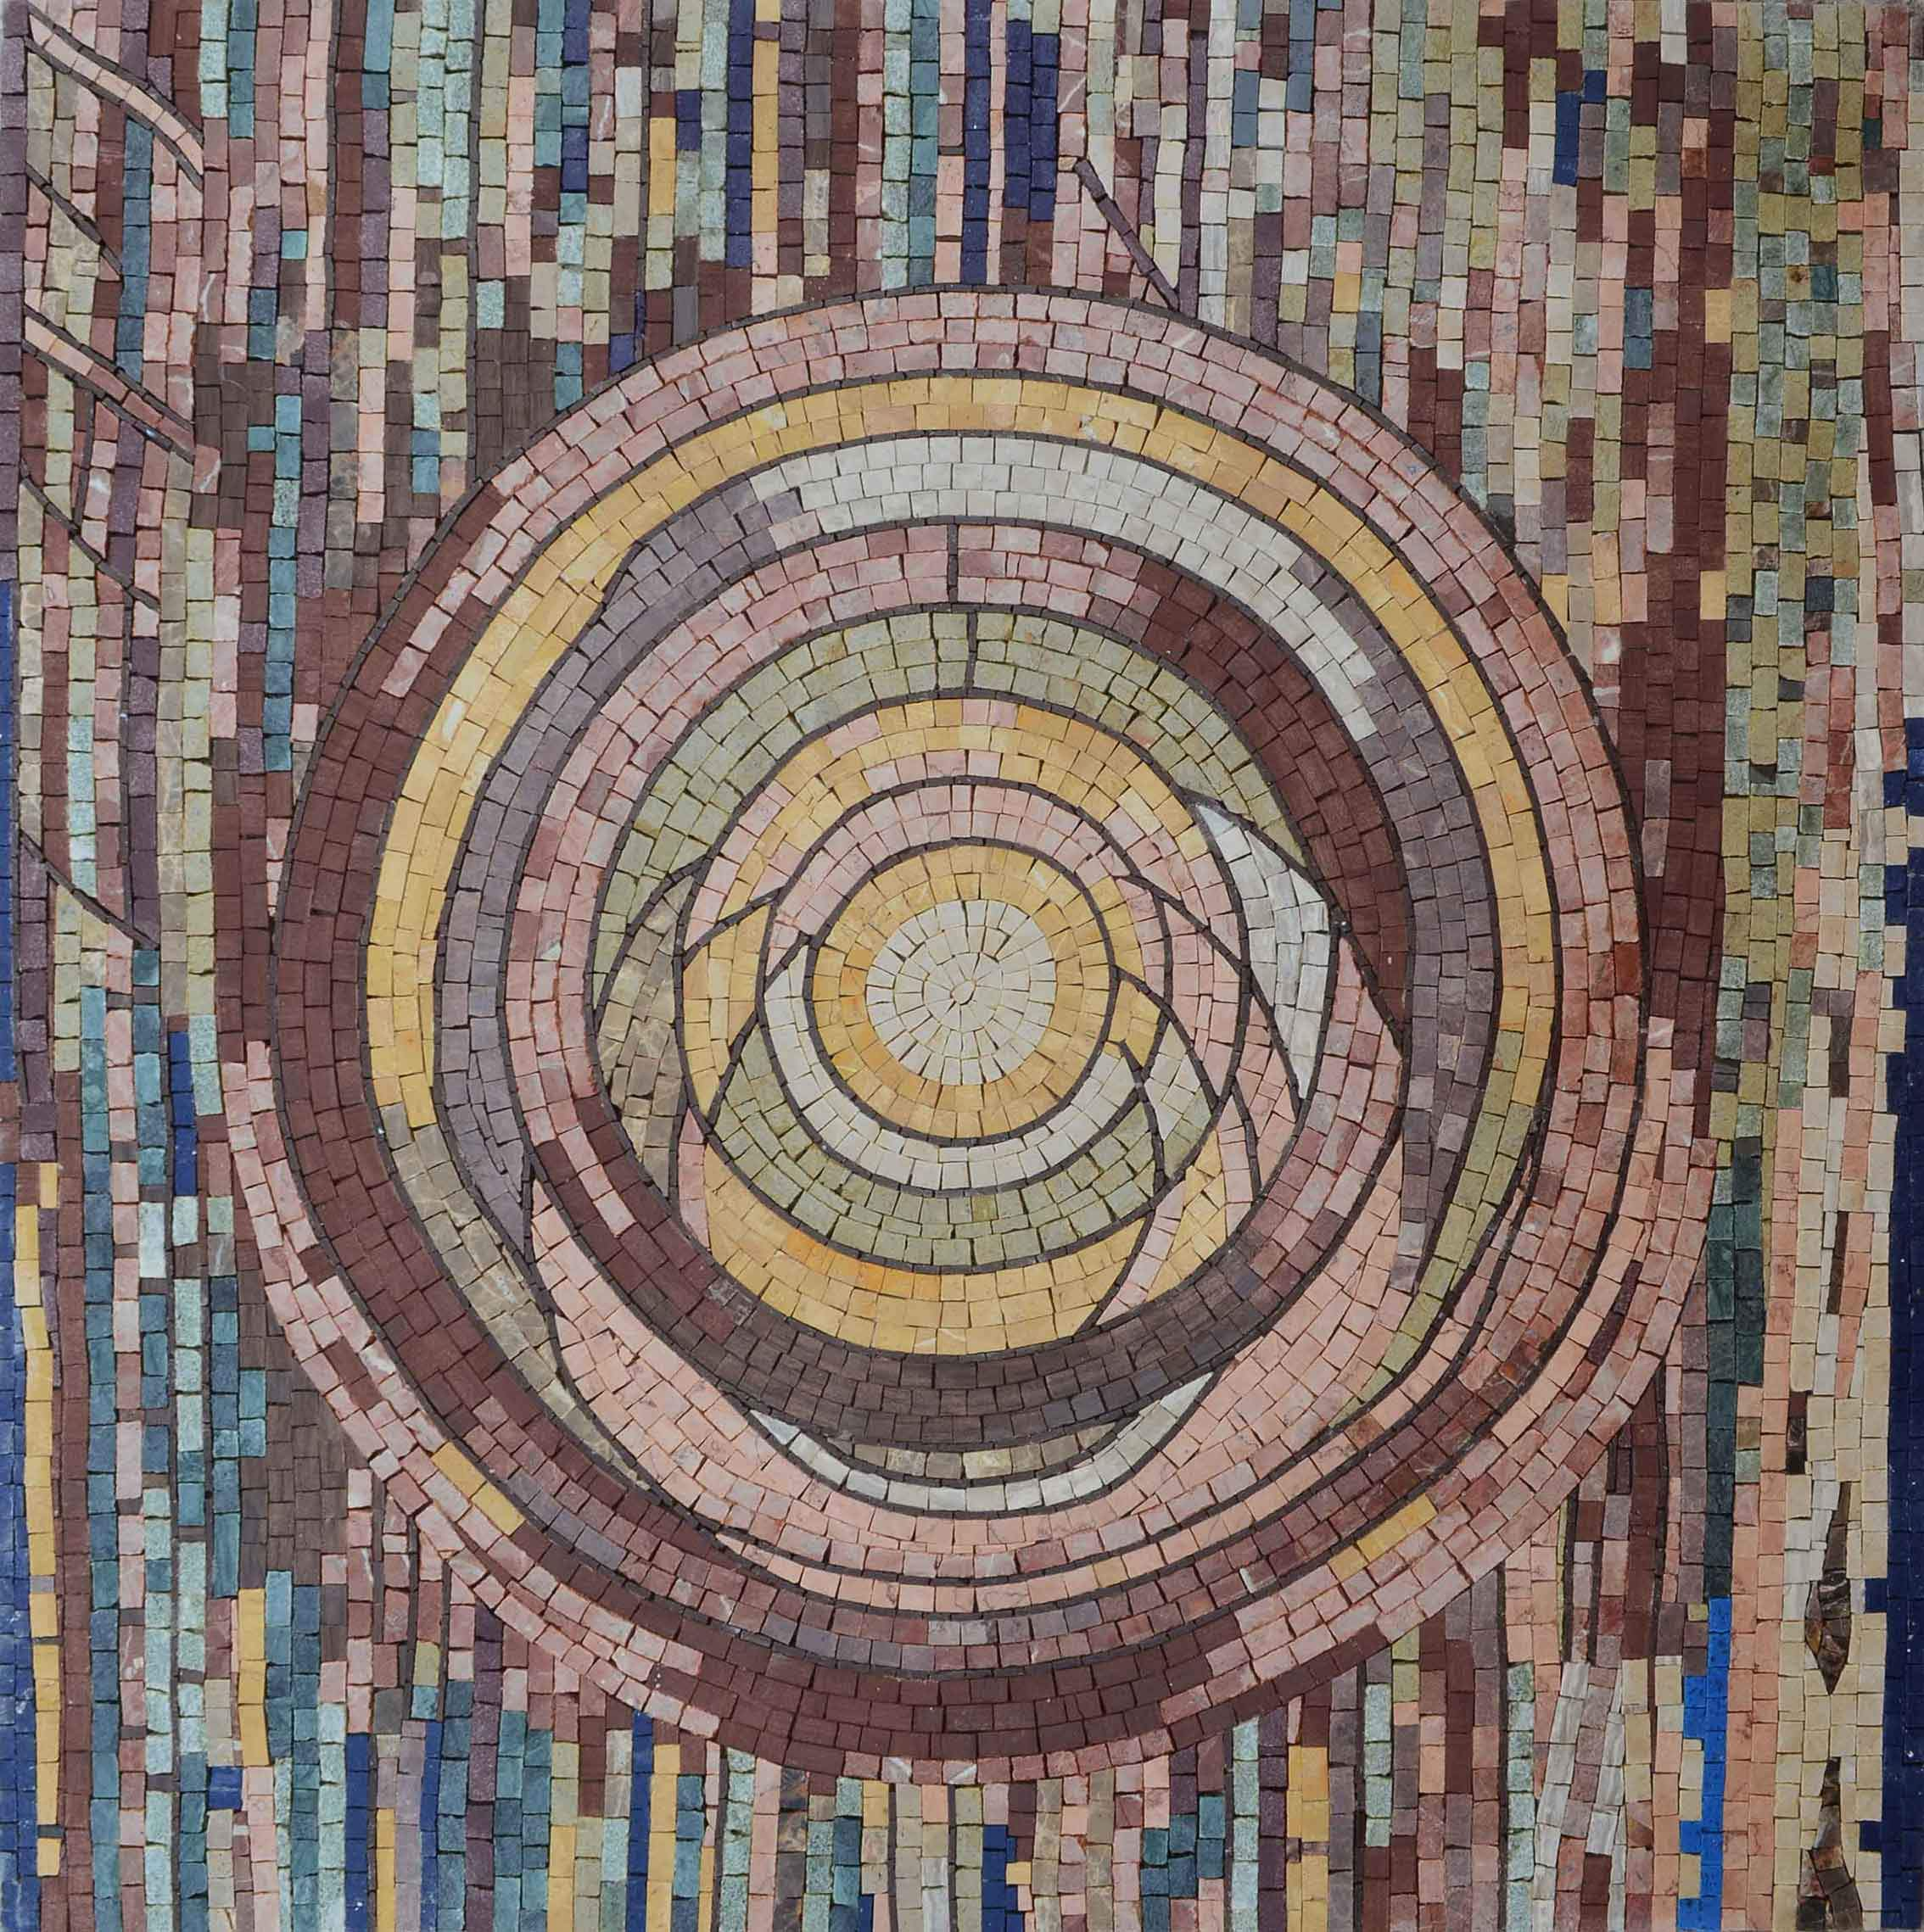 Abstract Design in Circles - Mosaic Art